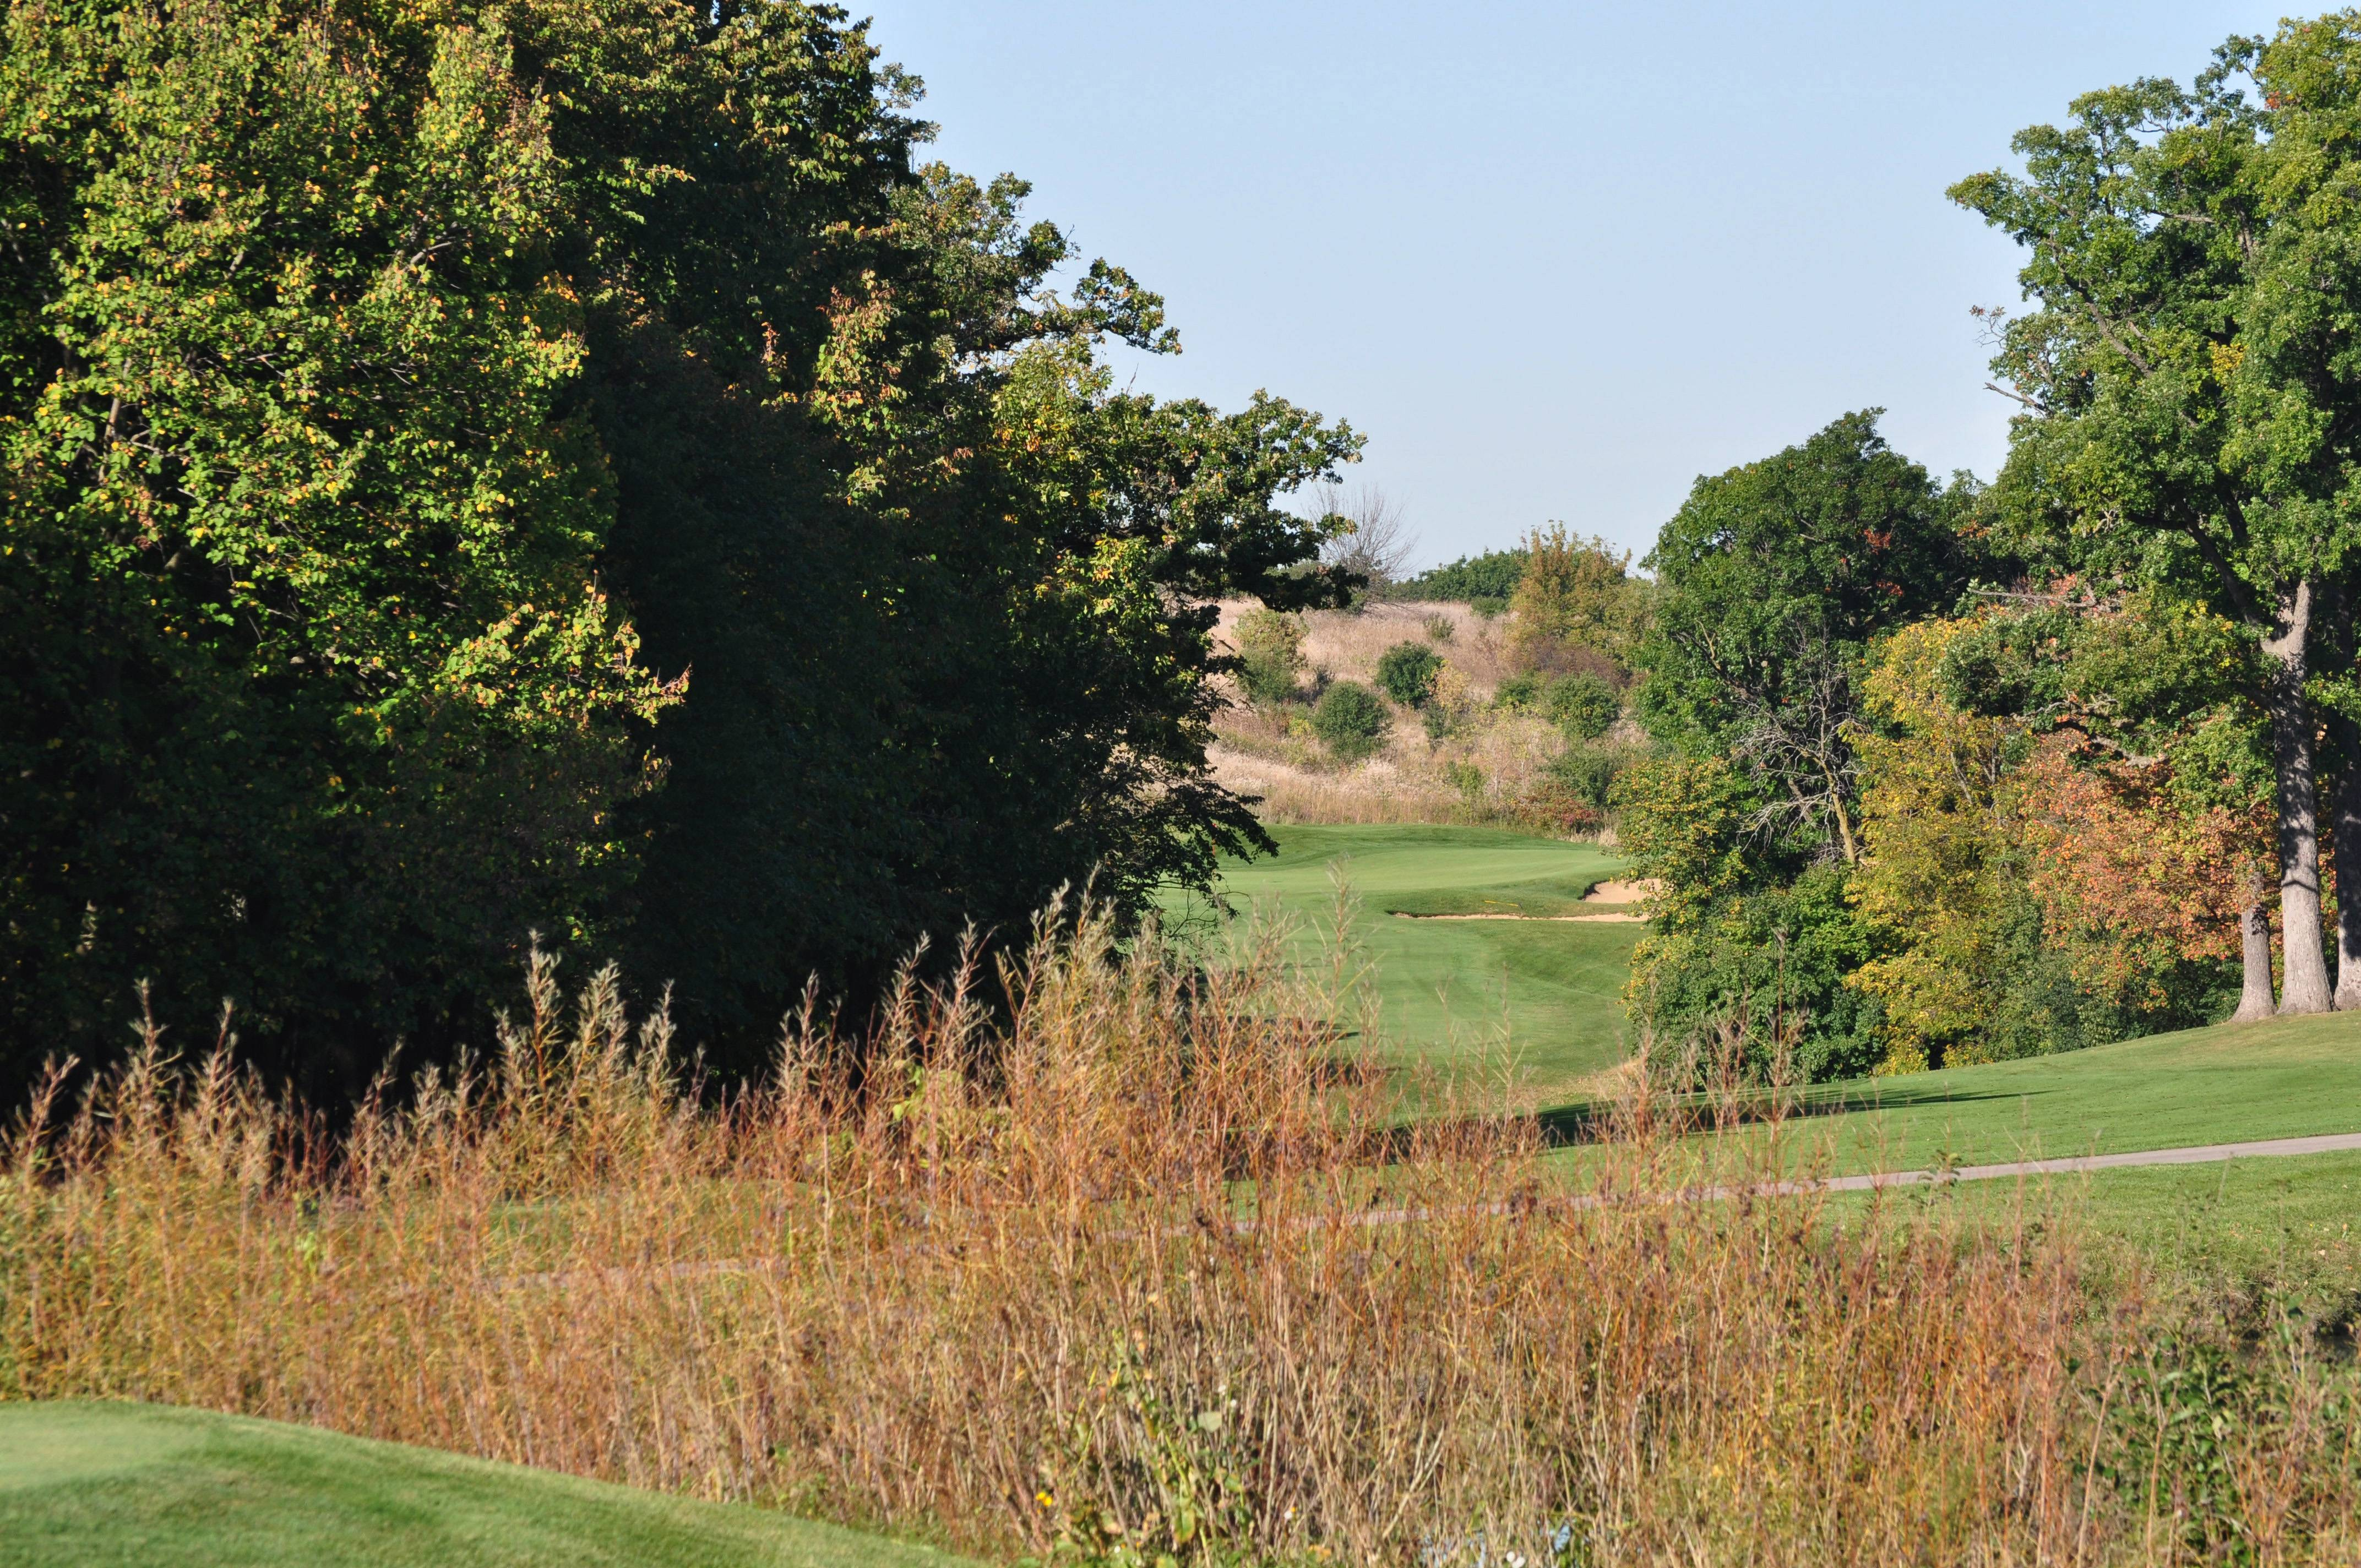 Improvements at Settlers Hill Golf Course will continue this year, and the No. 1 hole eventually will be moved to accommodate a driving range, according to the Kane County Forest Preserve District.